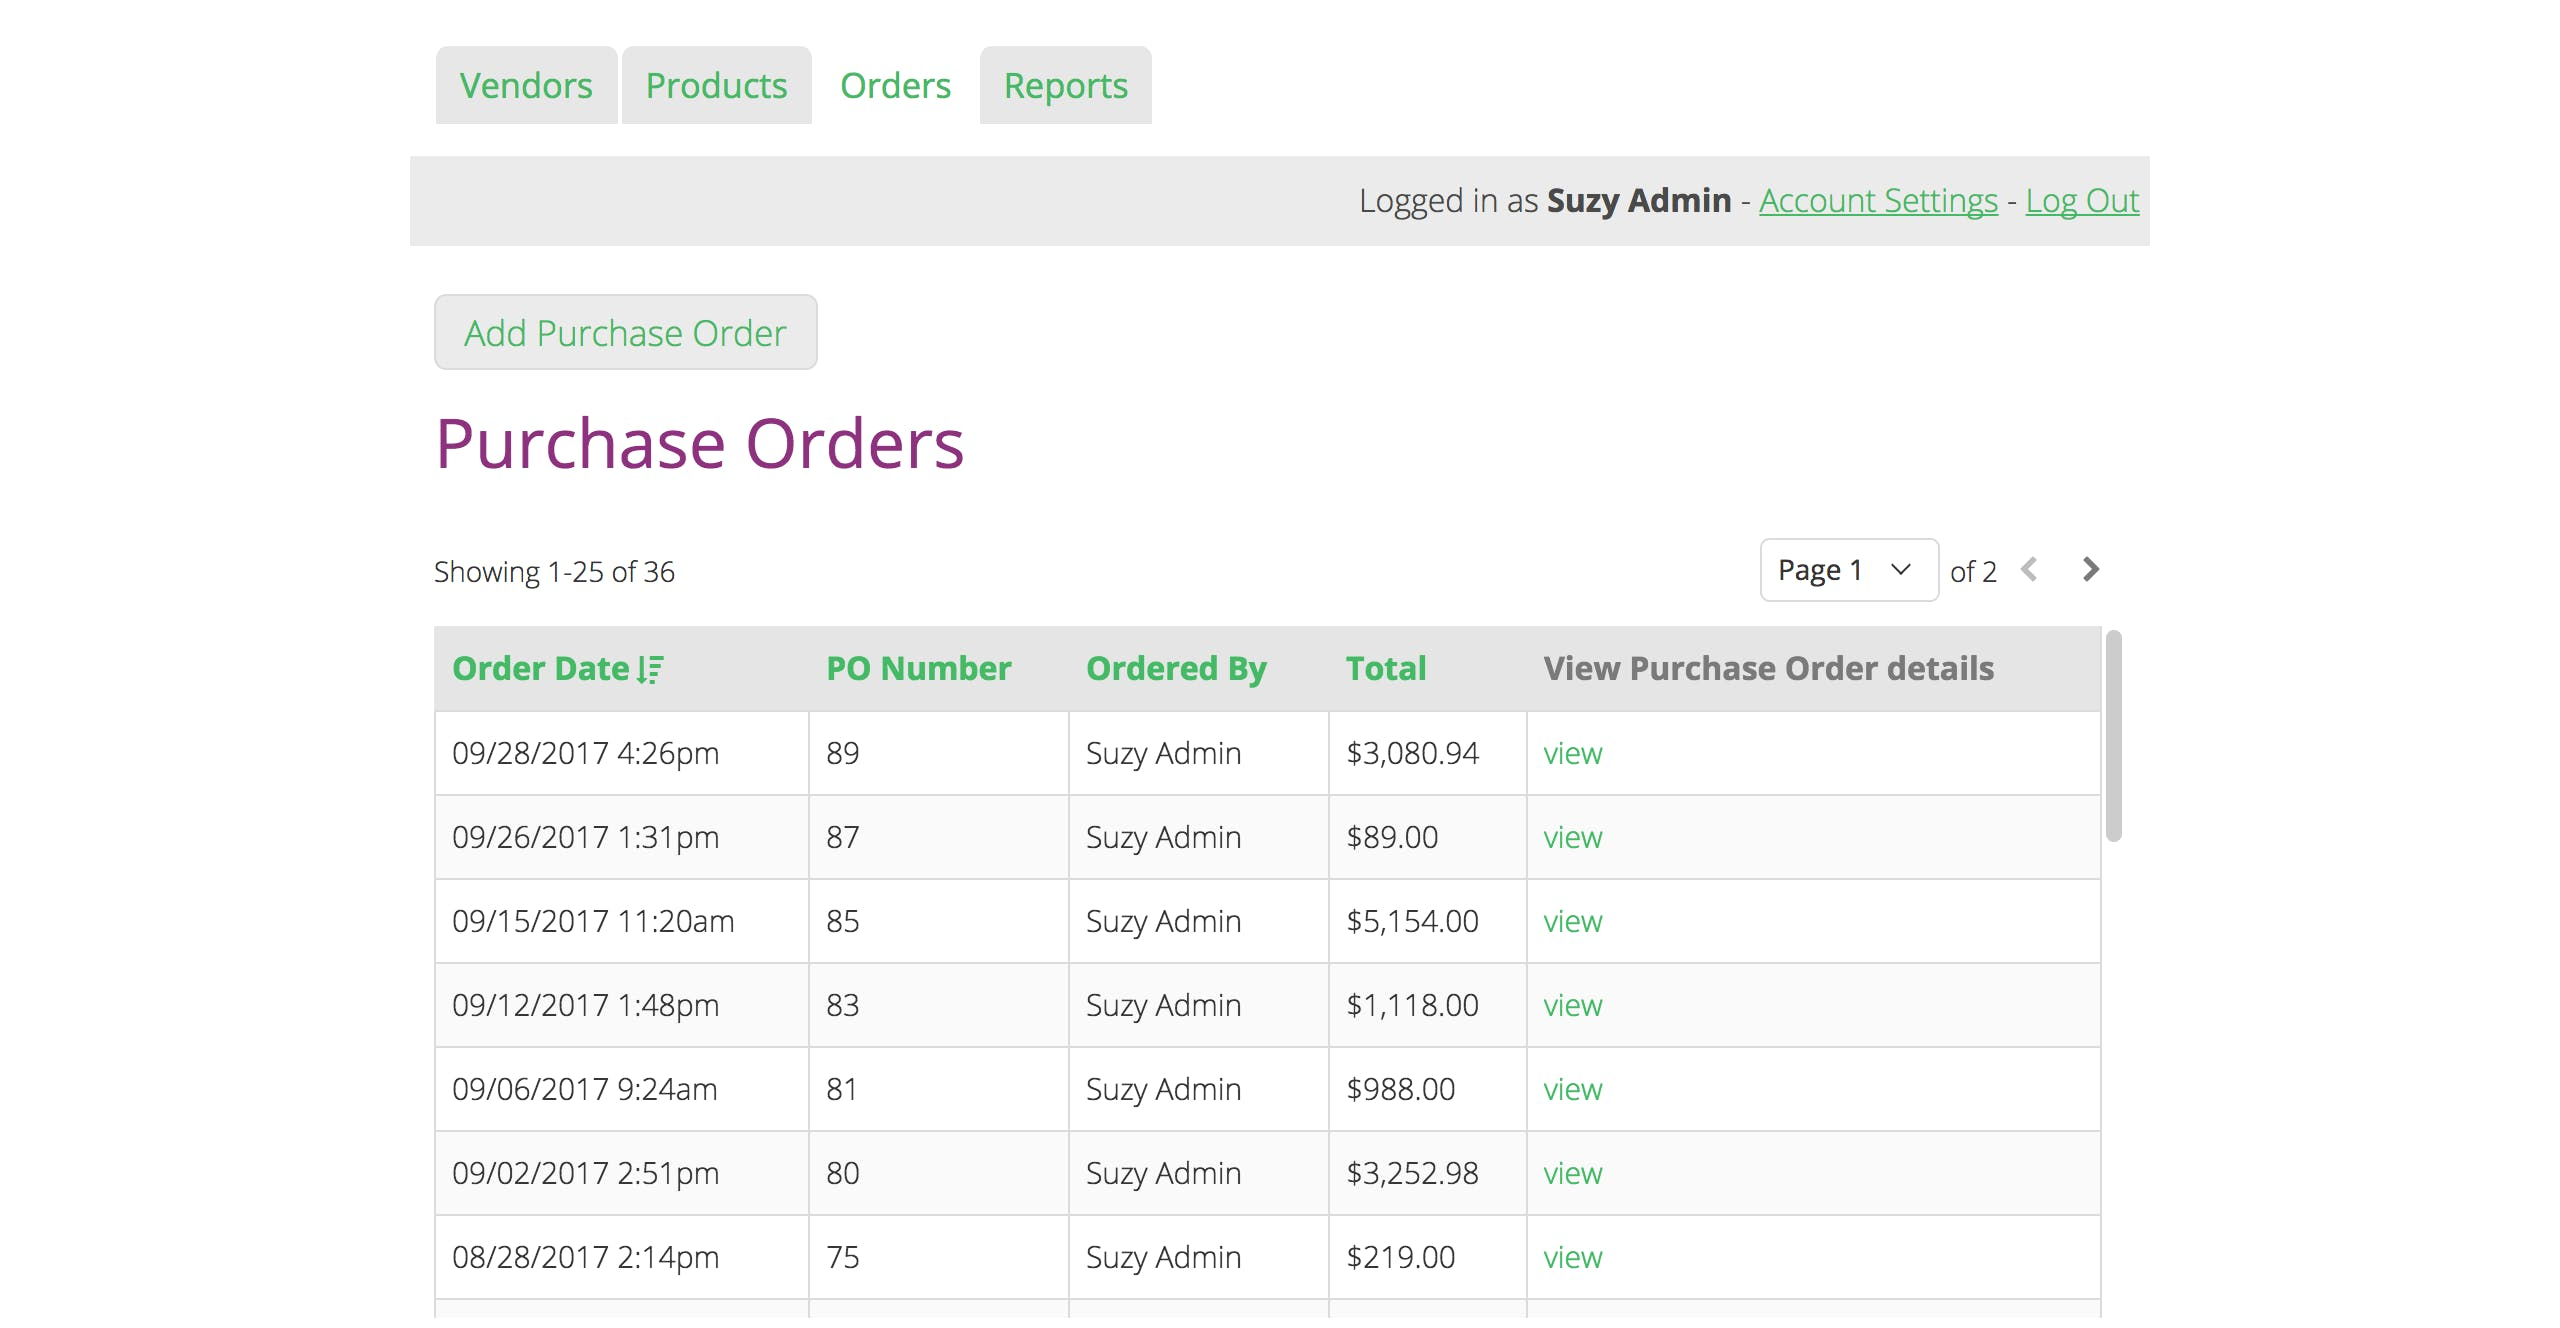 Users can log in and add and manage purchase orders.